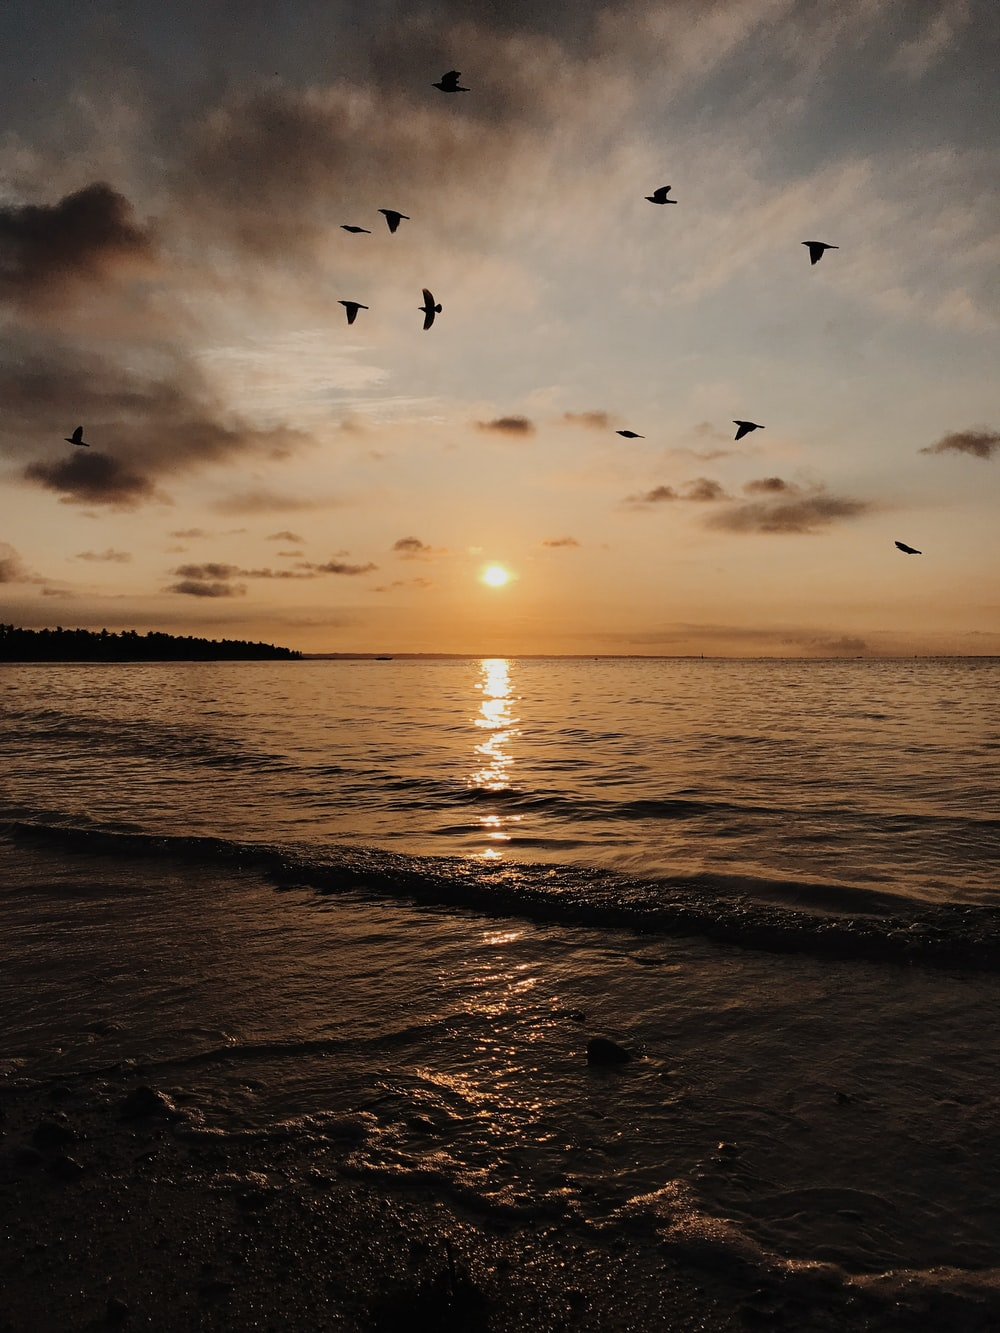 silhouette photography of flock of birds flying above shore